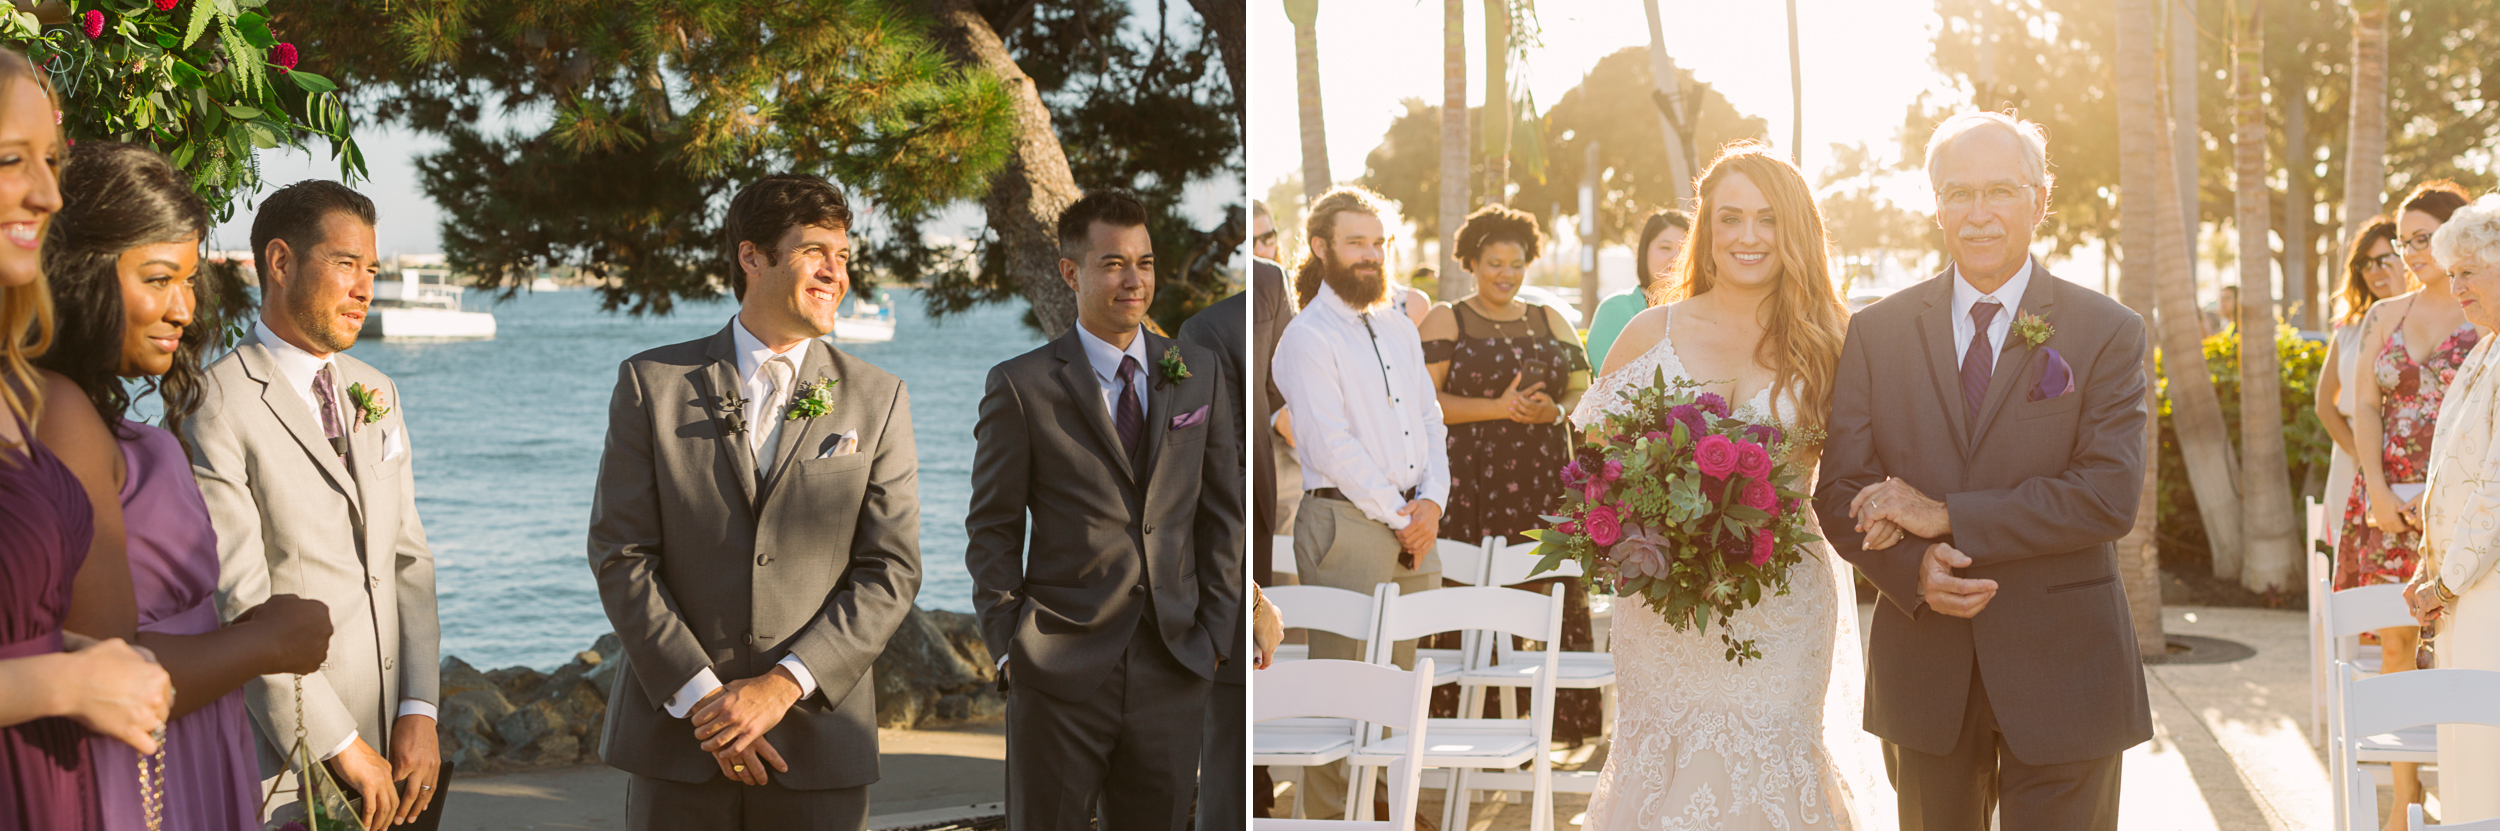 141San.diego.wedding.shewanders.photography.JPG